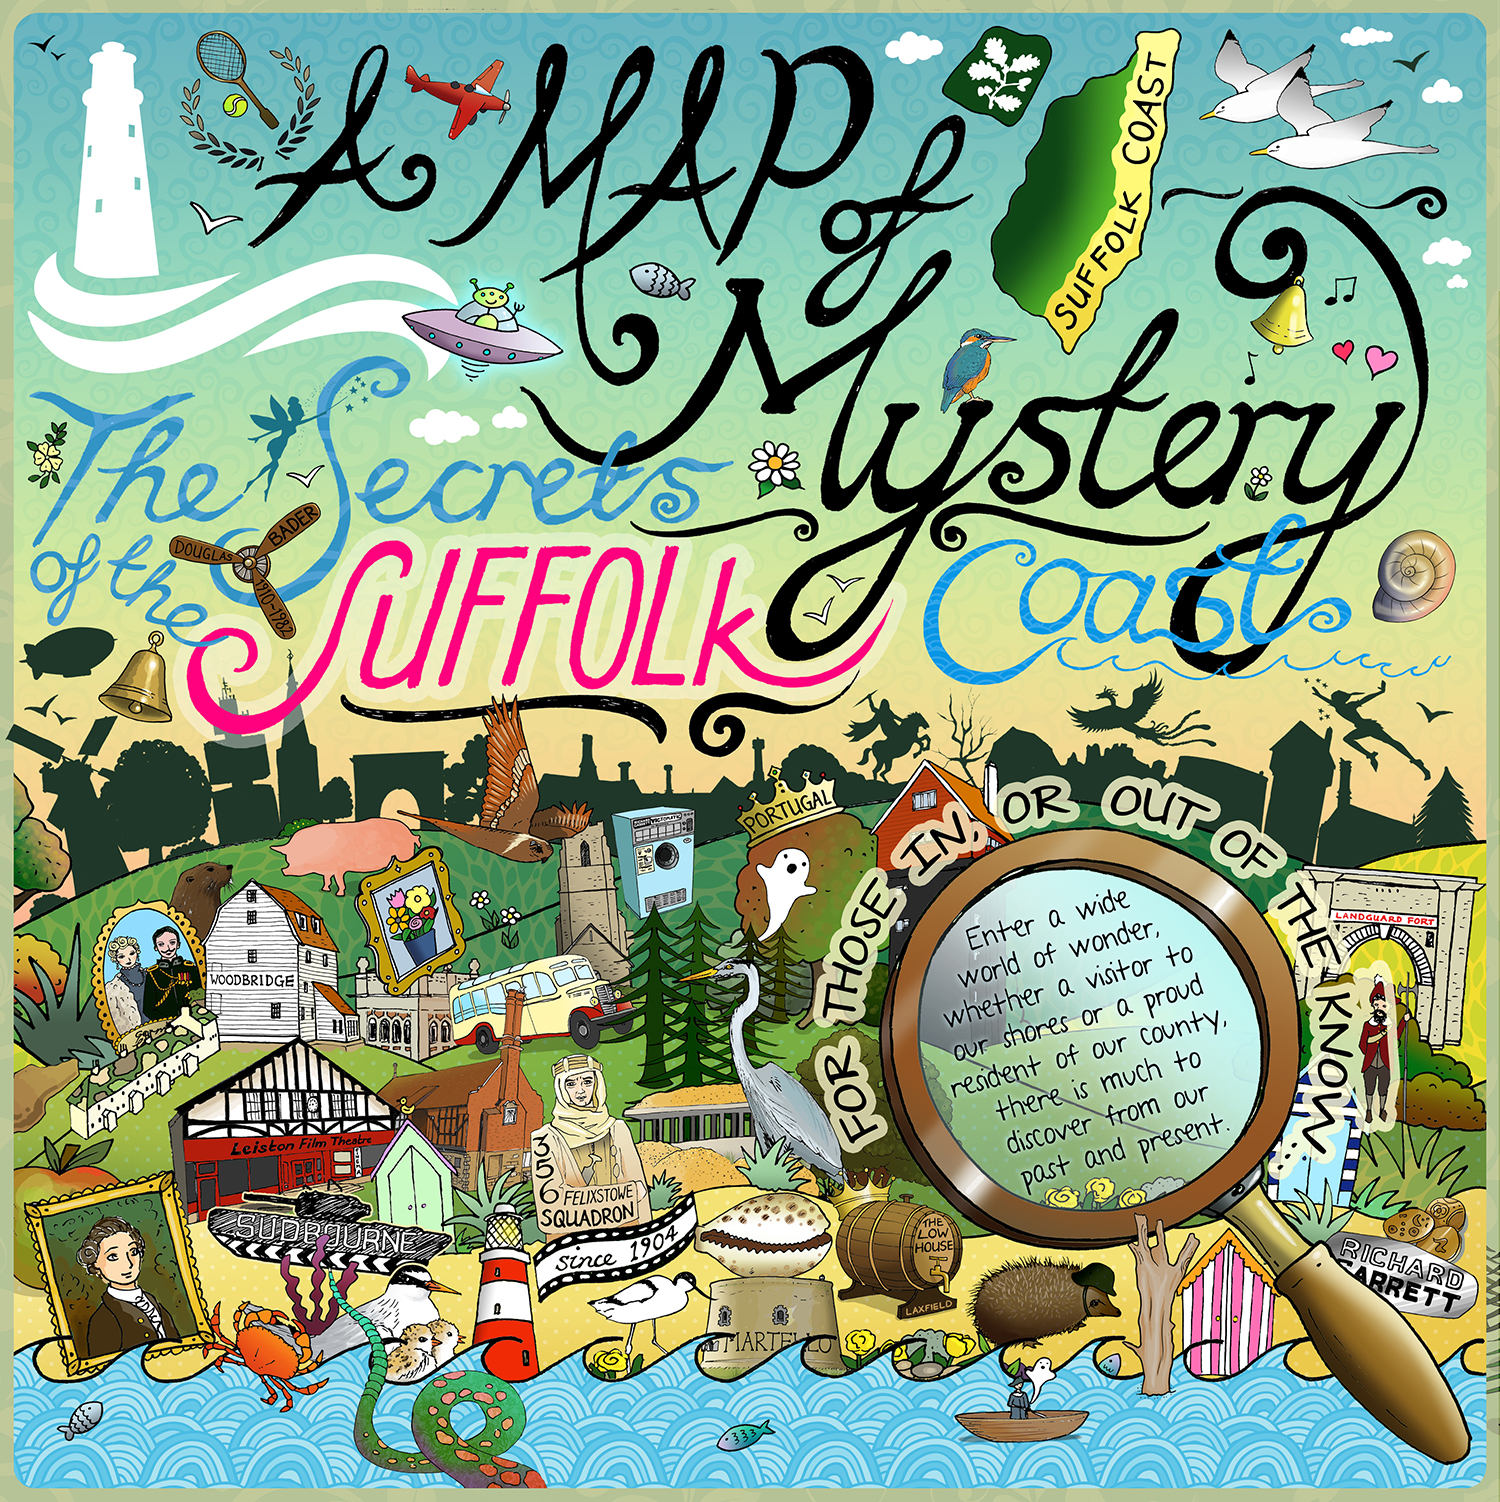 A Map of Mystery - The Secrets of the Suffolk Coast, by Reb Capper for Steamboat Creative